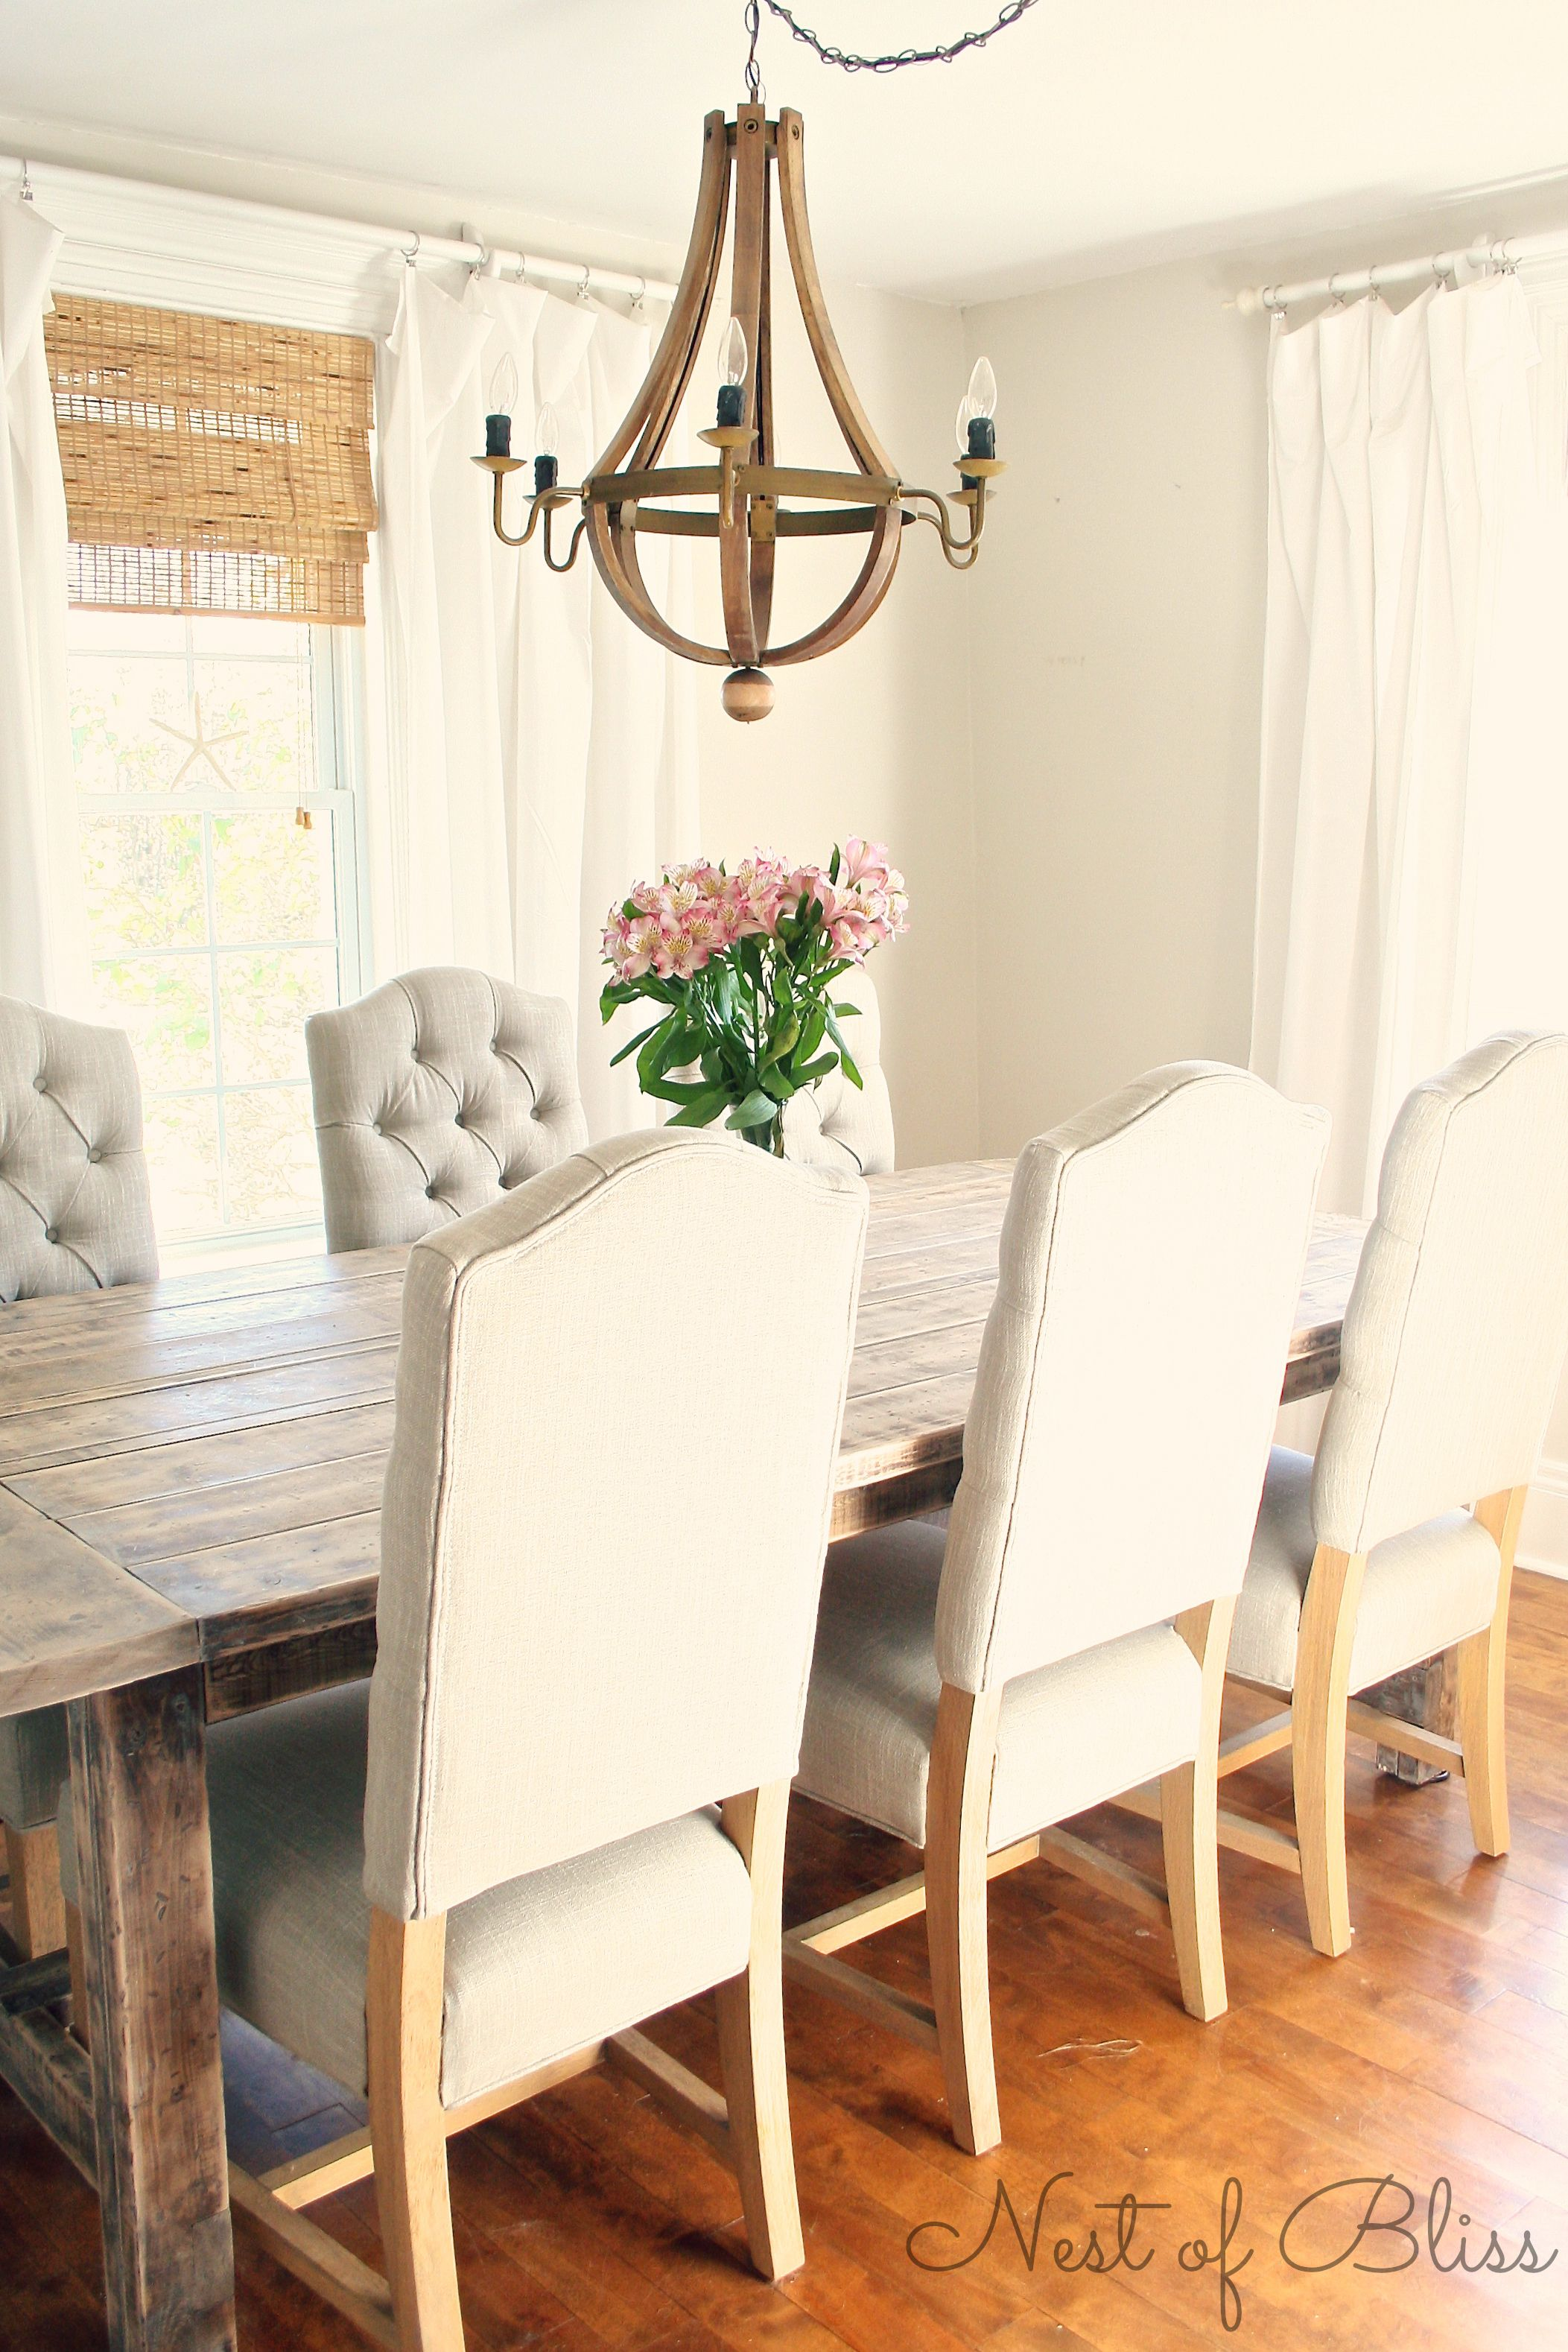 Wicker Emporium Dining Chairs Paired With A Rustic Farmhouse Table And Restoration Hardware Knock Off Chandelier